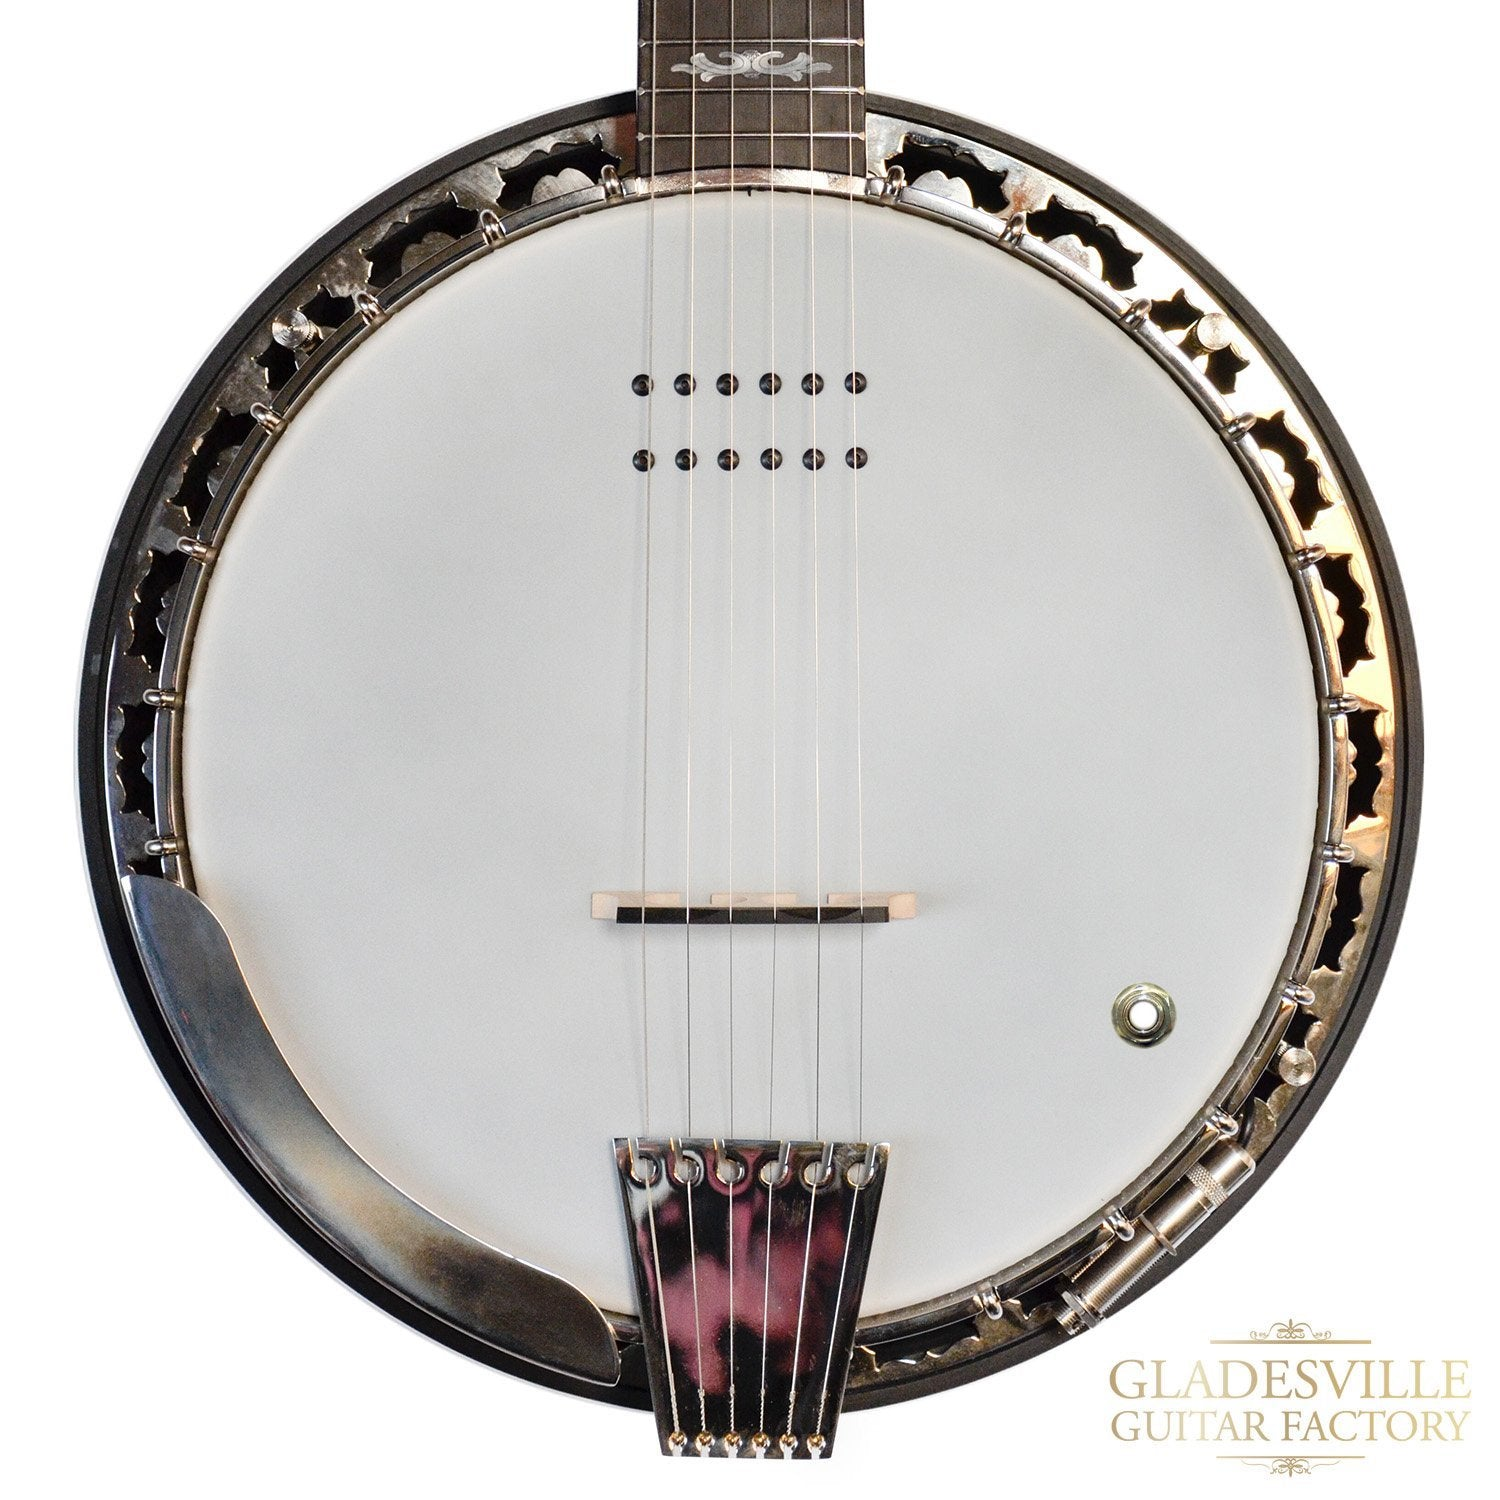 "Kavanjo 6-String Banjo Pickup 11"" Head mount"